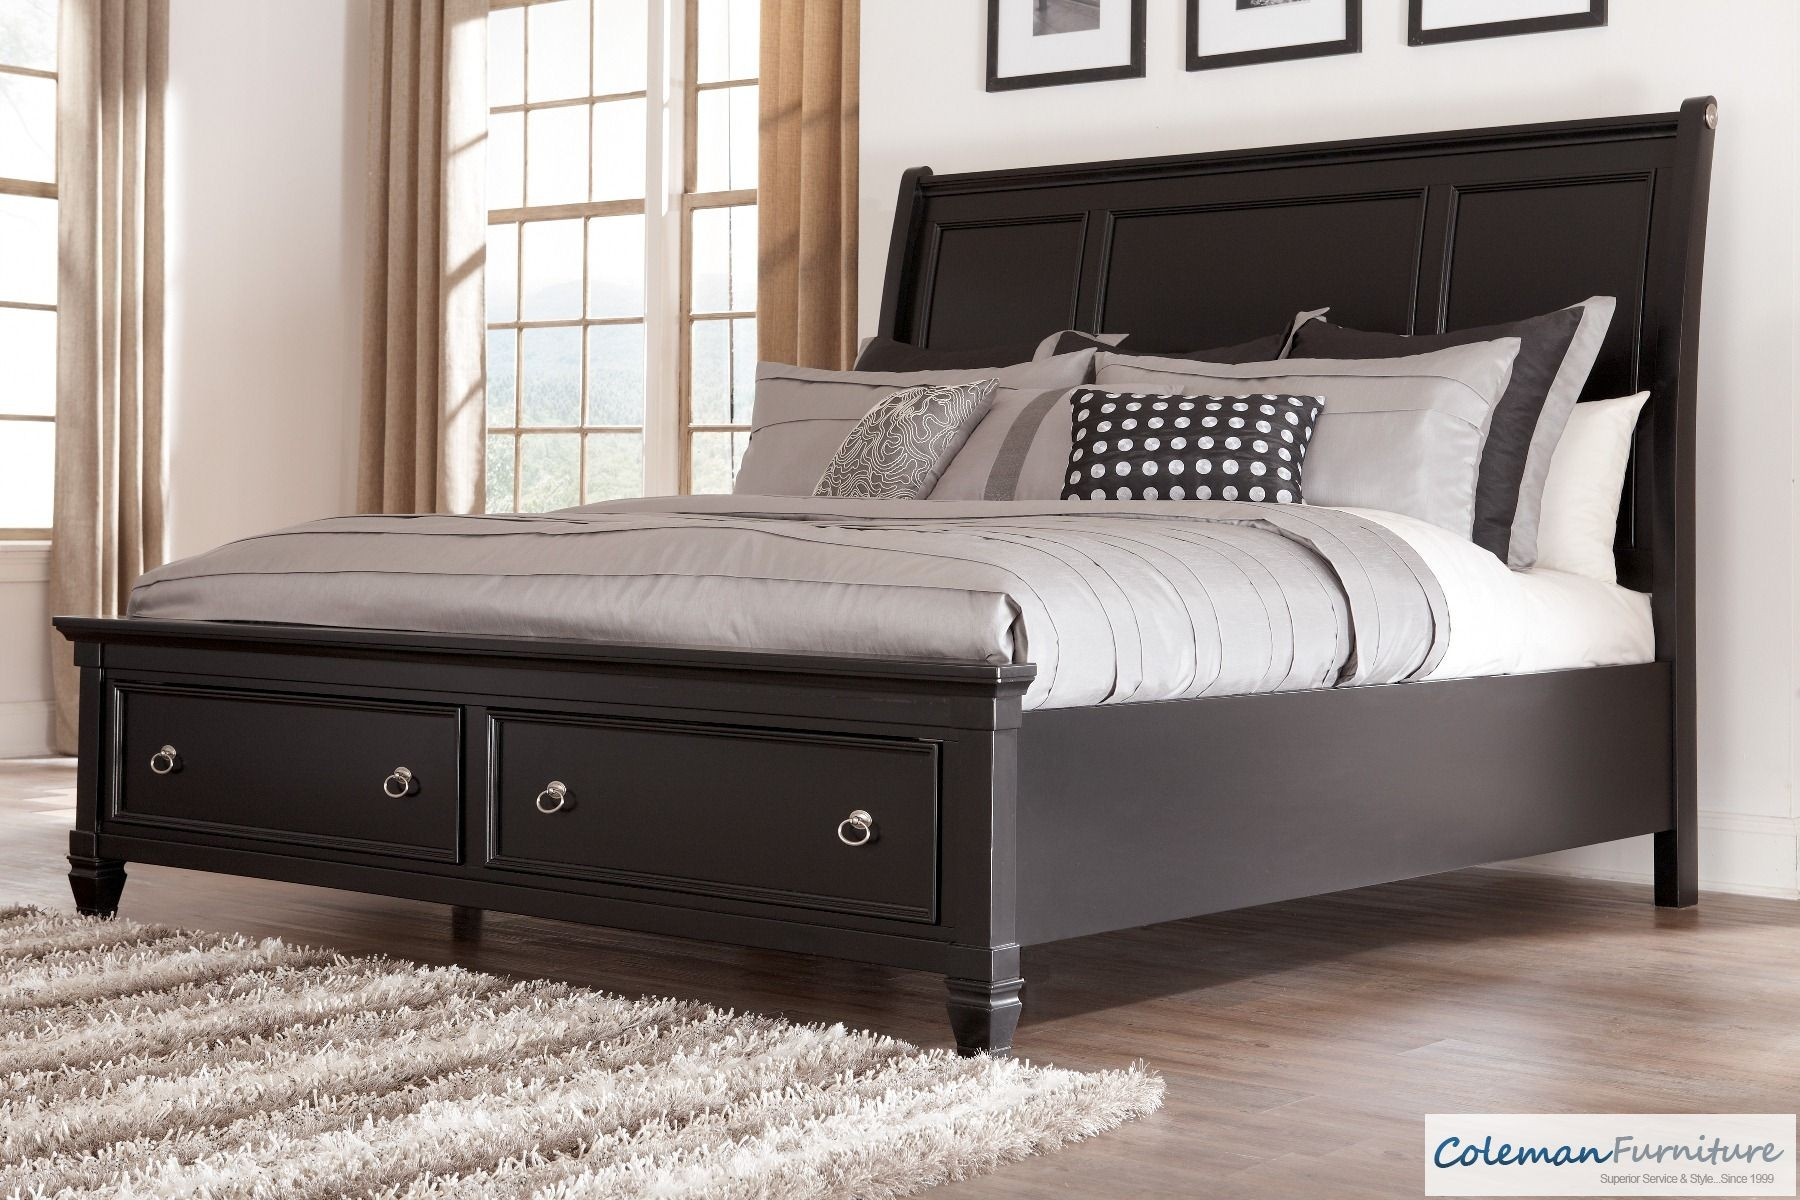 Greensburg Queen Storage Sleigh Bed From Ashley B671 74 77 98 Coleman Furniture